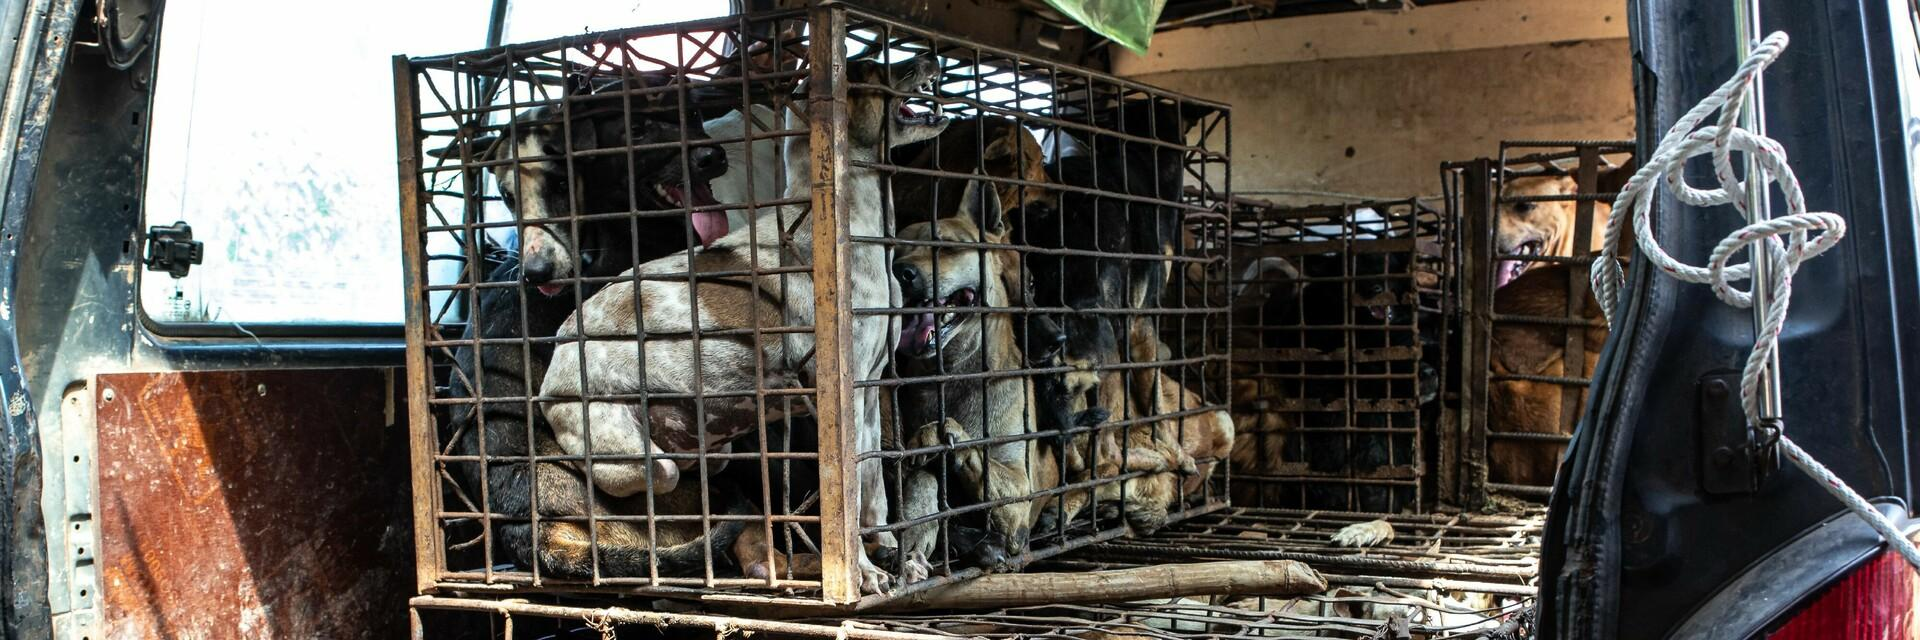 Many dogs in dog meat cages